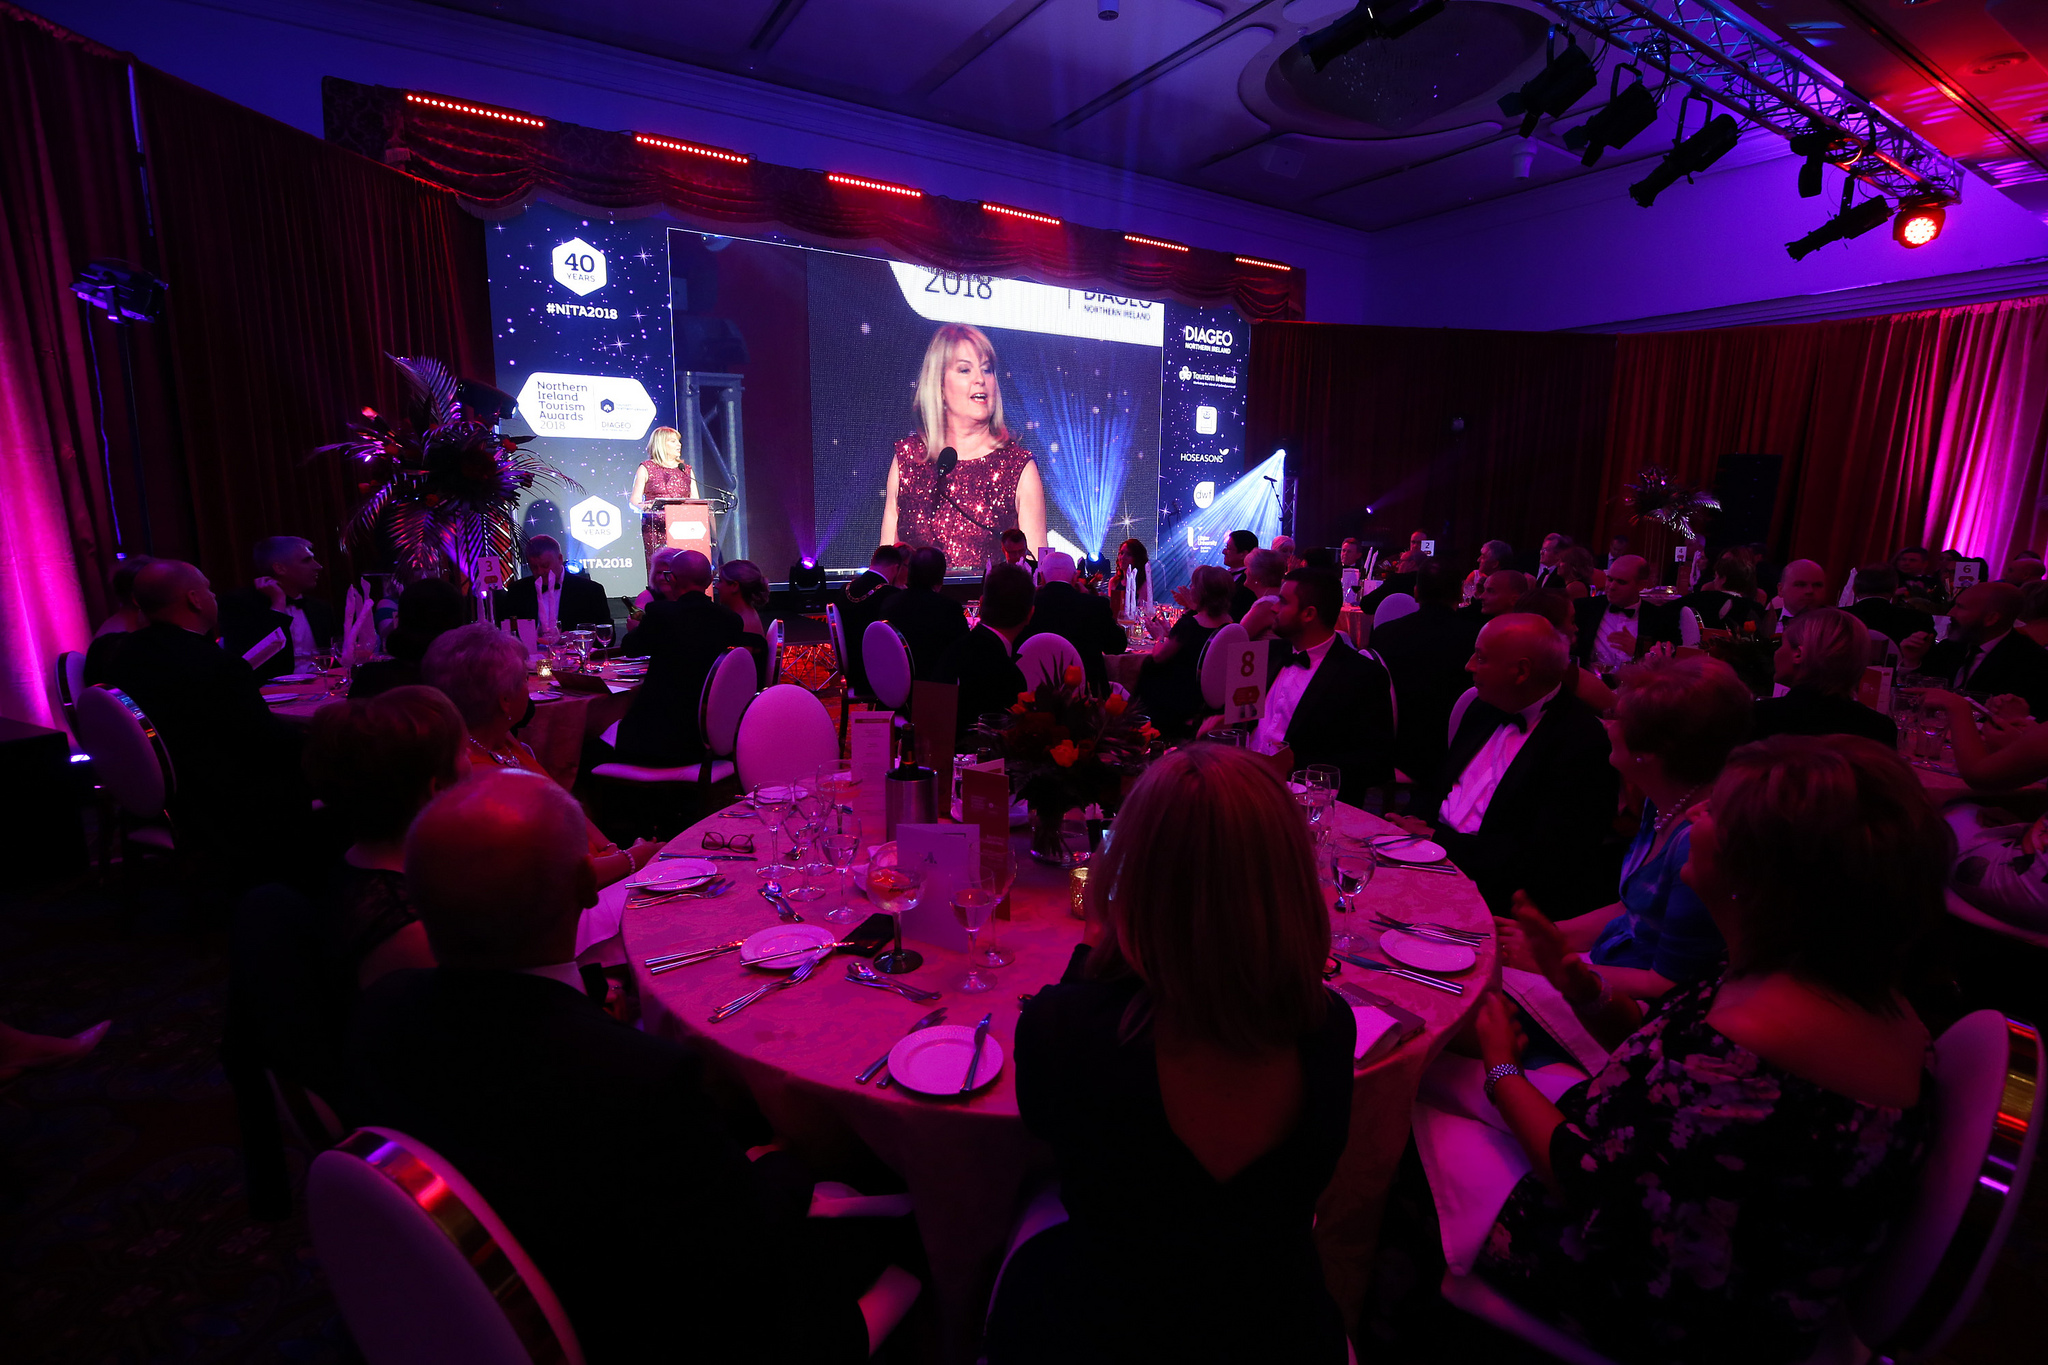 Celebrating local tourism at last year's Northern Ireland Tourism Awards